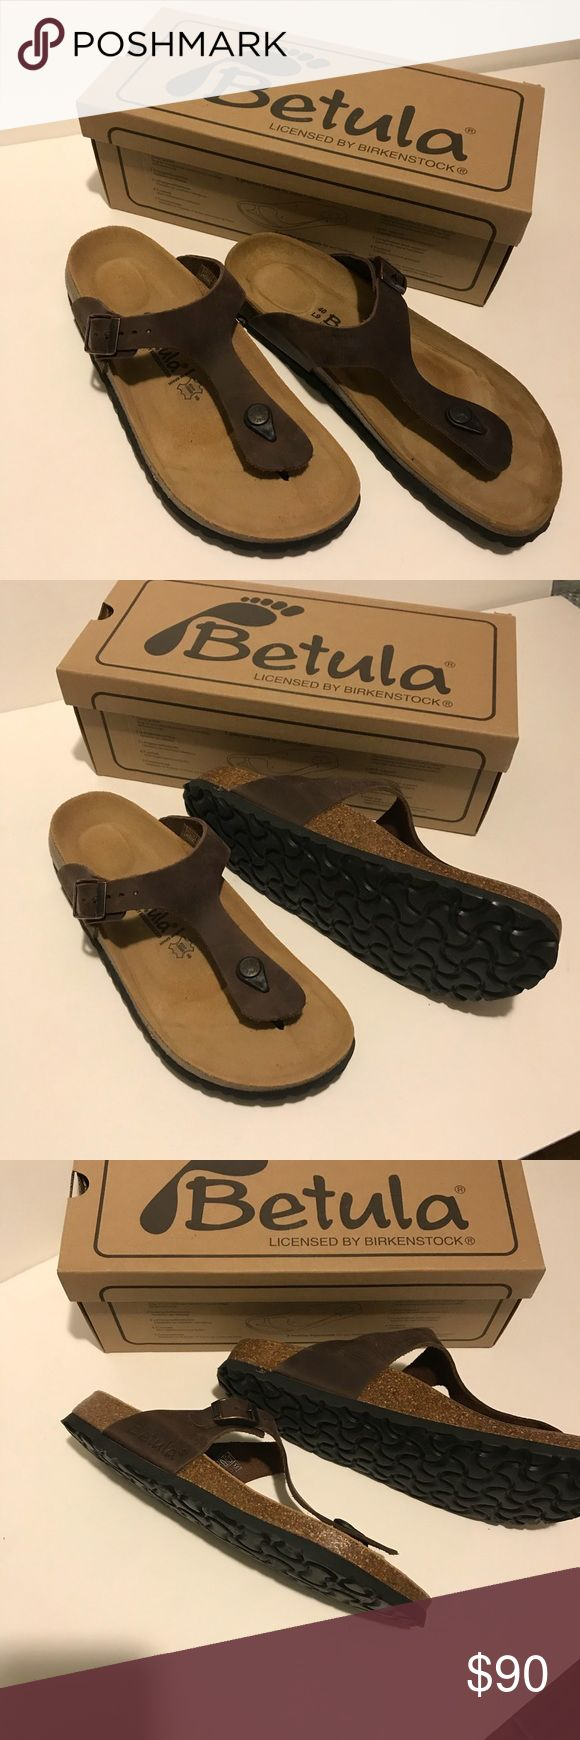 New in Box Betula sandals in brown leather New in Box Betula Sandals in brown leather by Birkenstock.  Sizing on shoe says Euro 40/US Women's size 9, although Euro 40 is usually a size 10.  I wear a size 9.5 and they fit me perfectly. Birkenstock Shoes Sandals